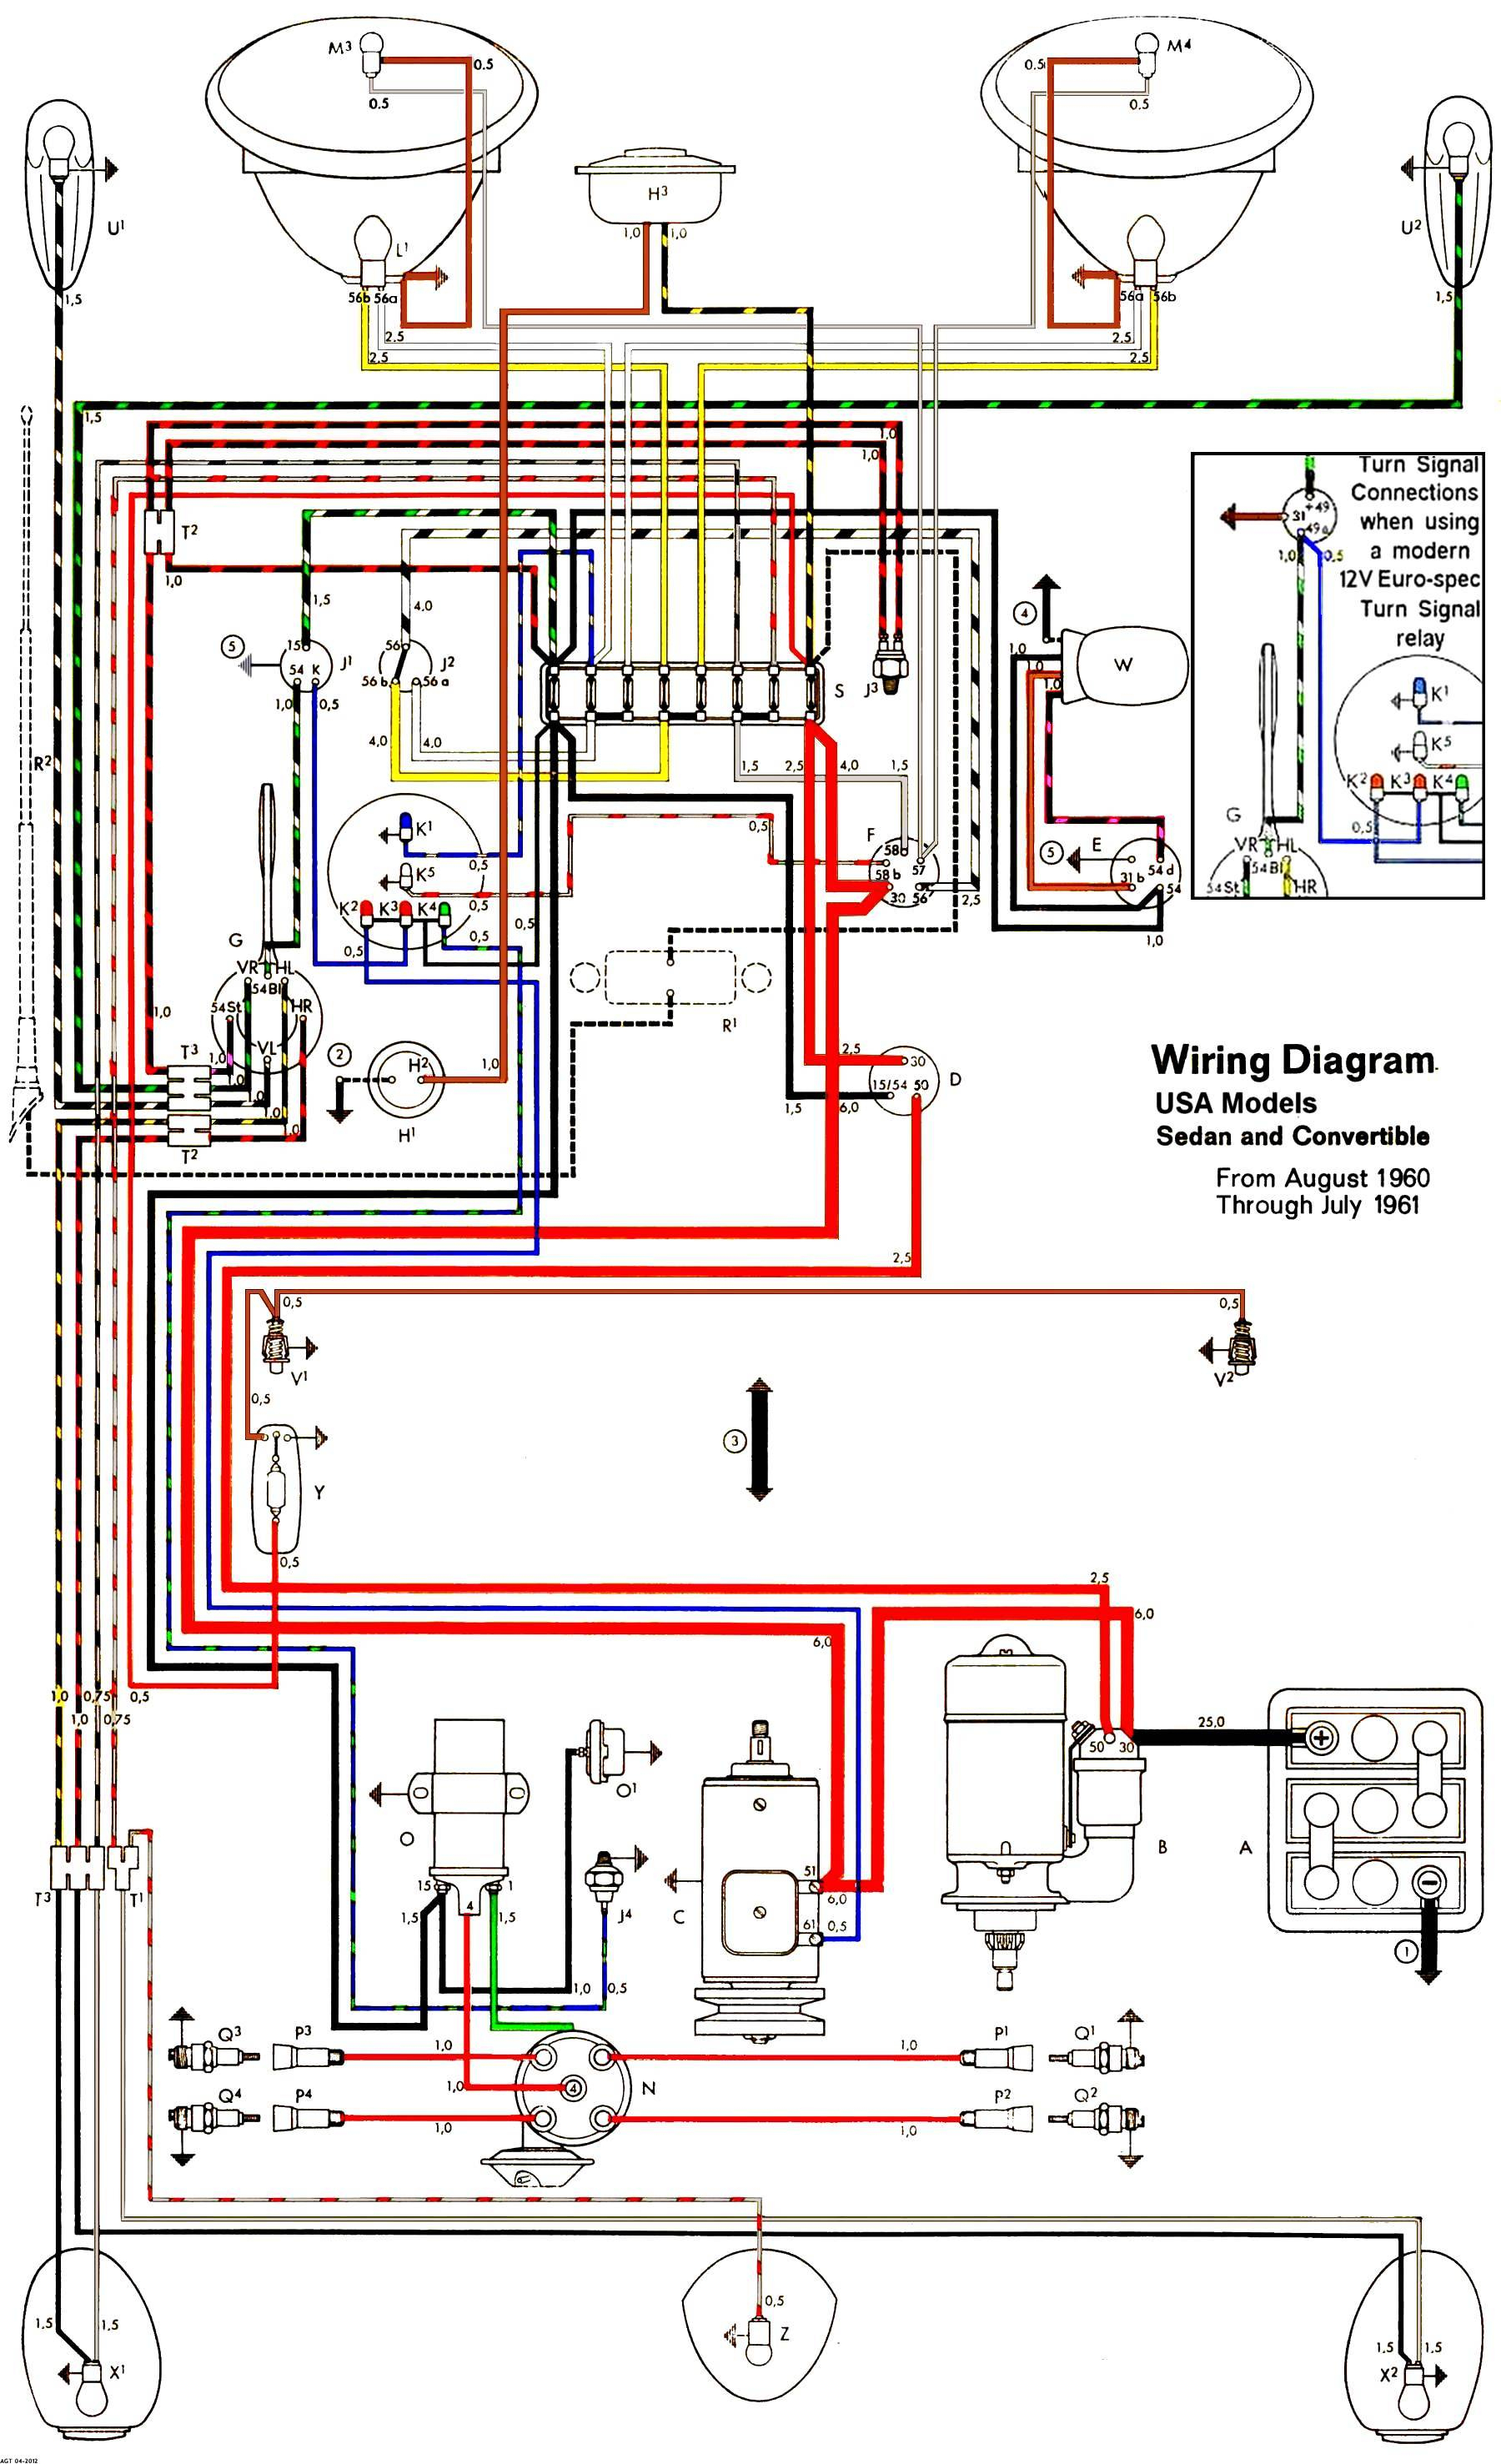 96 Ford 5 0 Alternator Wiring Diagram - Data Wiring Diagram Site - One Wire Alternator Wiring Diagram Ford